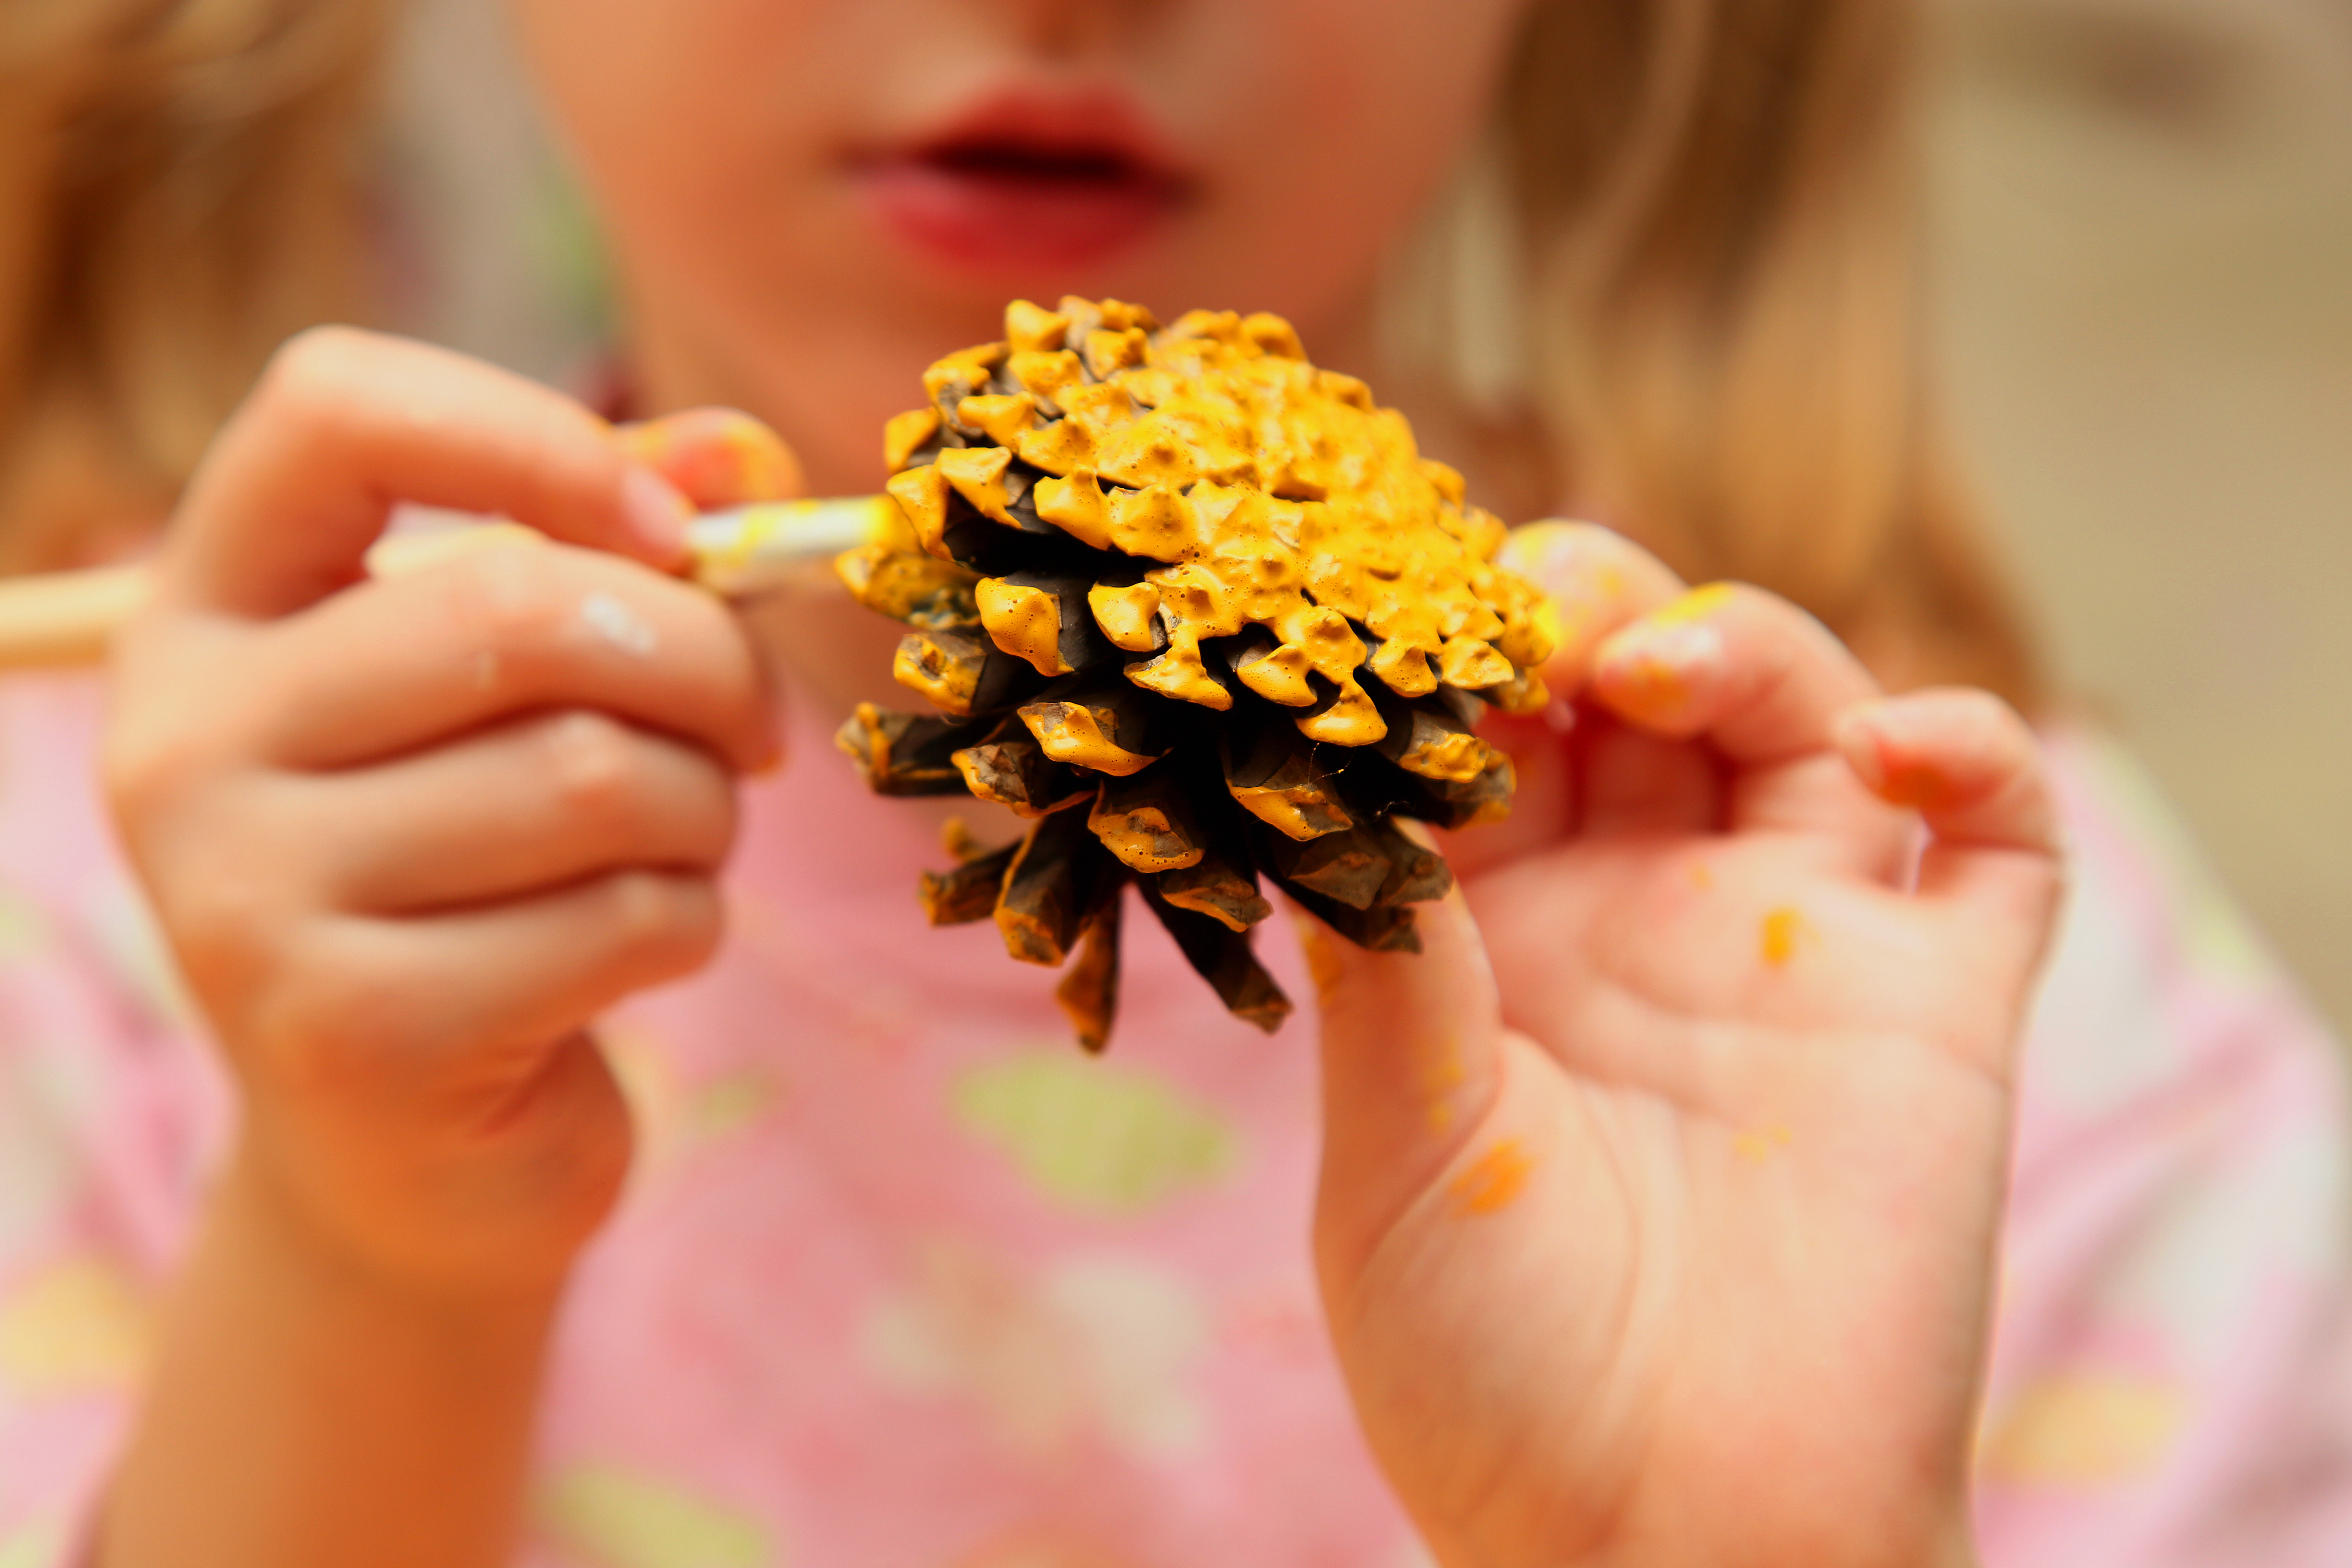 The,Child,Painting,Pinecone,In,Yellow,Colour